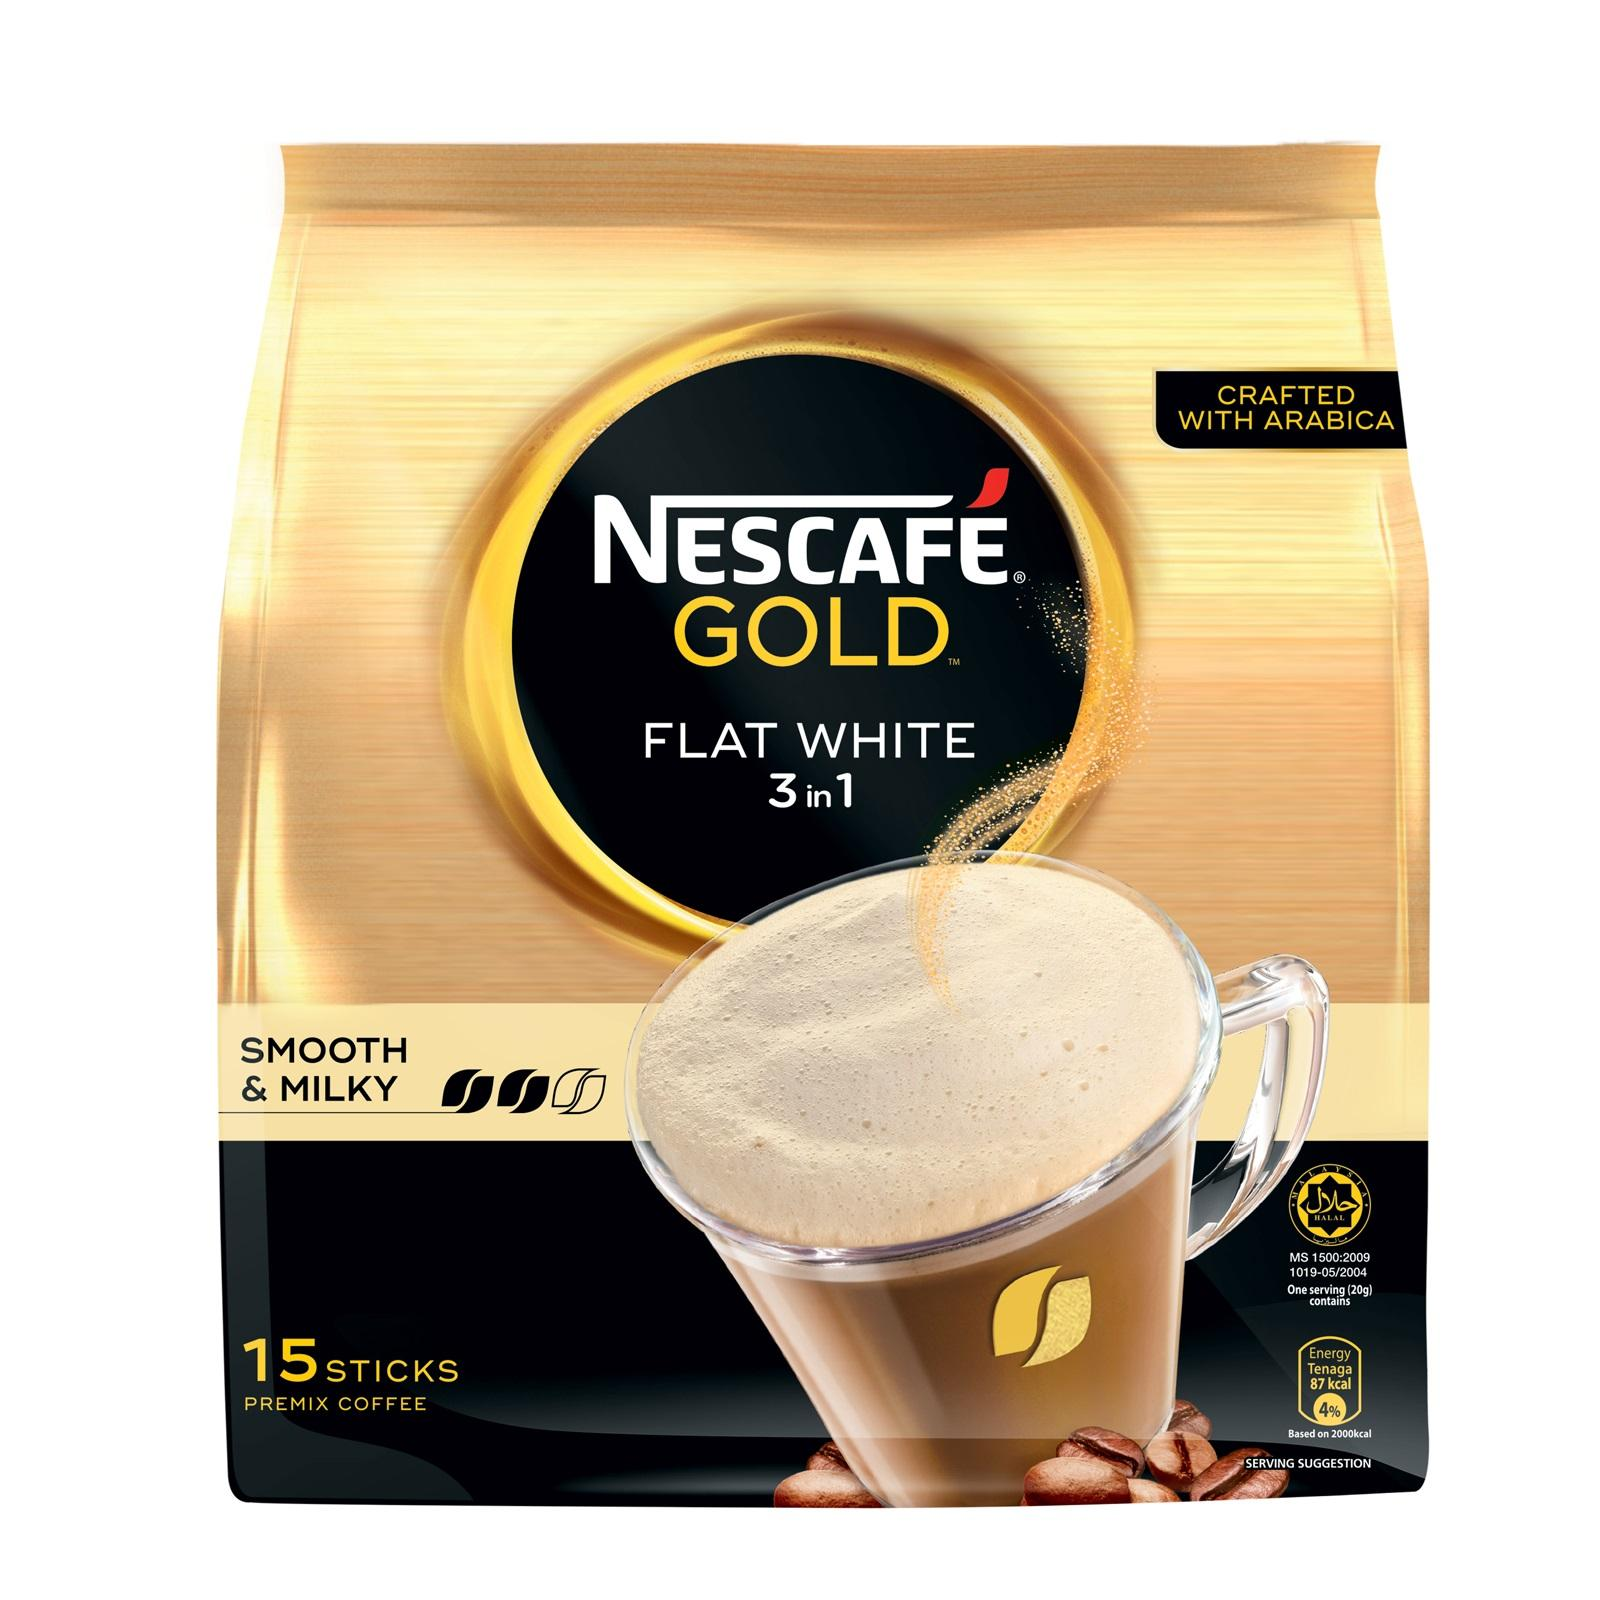 Nescafe Gold 3 in 1 Instant Coffee - Flat White